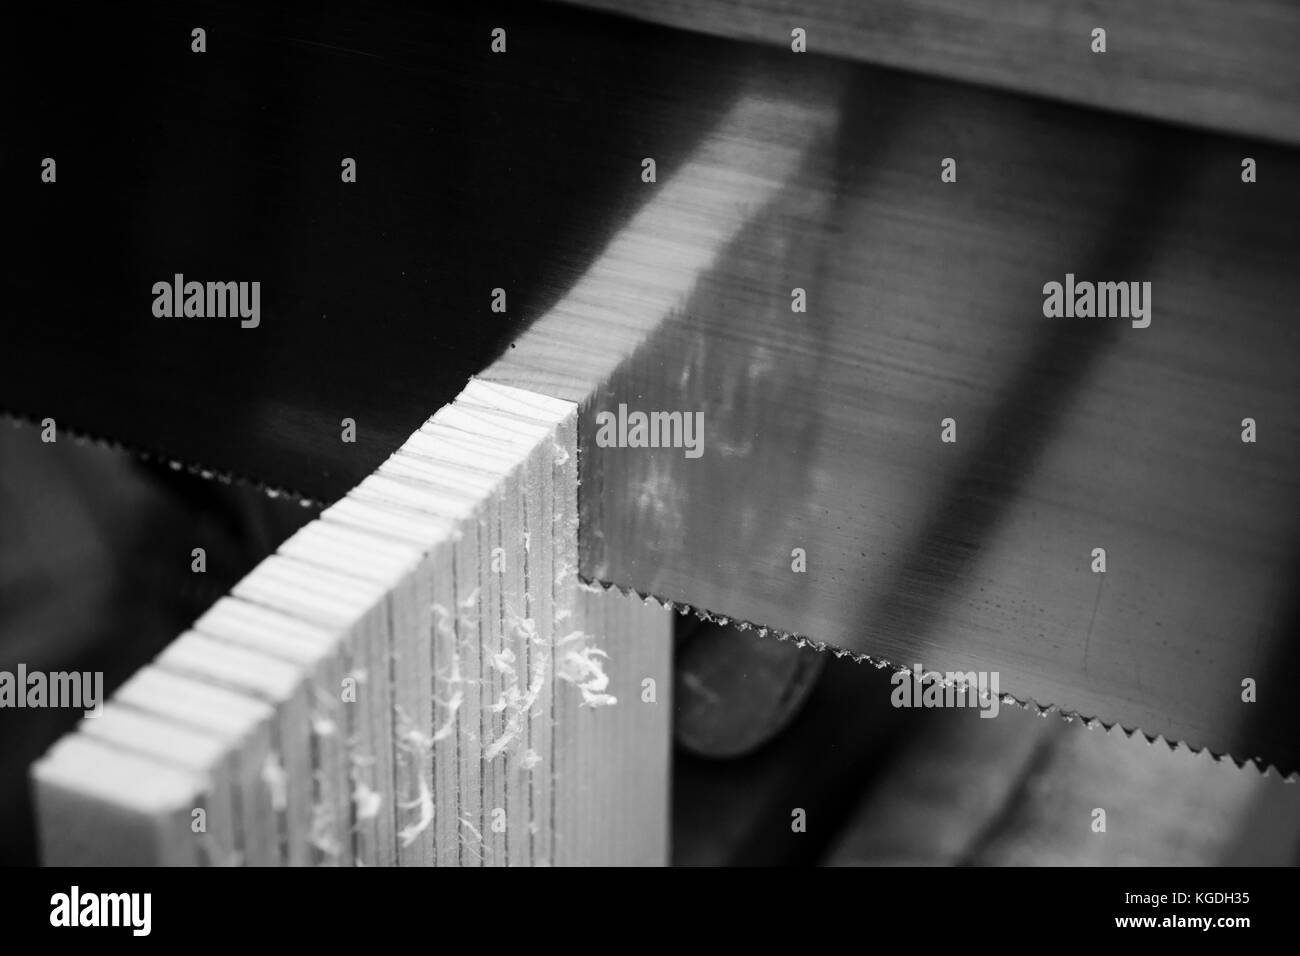 Saw cutting through a piece of wood. The wood reflects off the surface of the saw blade. - Stock Image